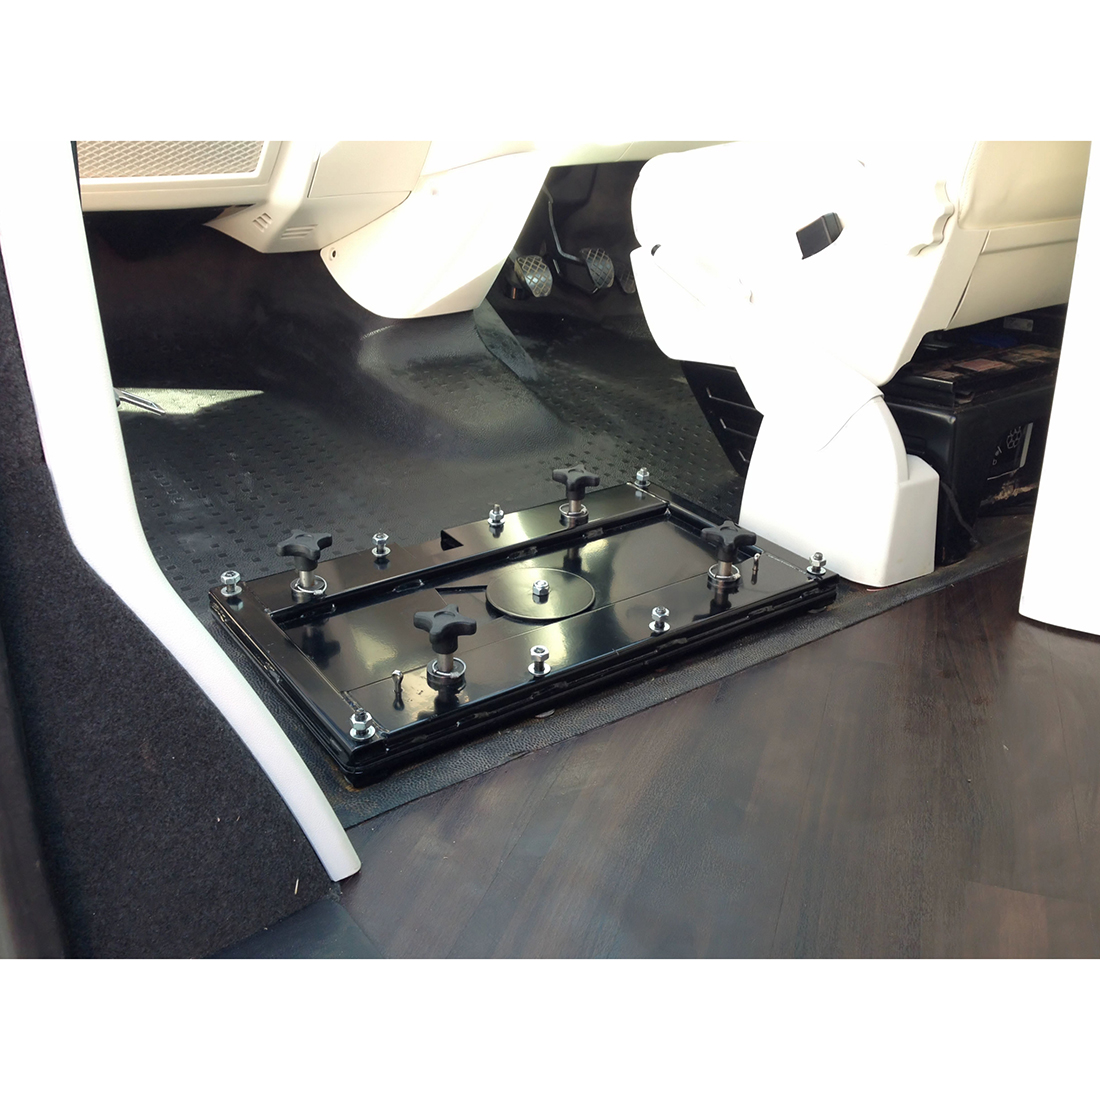 T4 Double Rotating Seat Base, VW T4 T5 Xtreme Van   For All Your Xtremevan  Conversion Needs